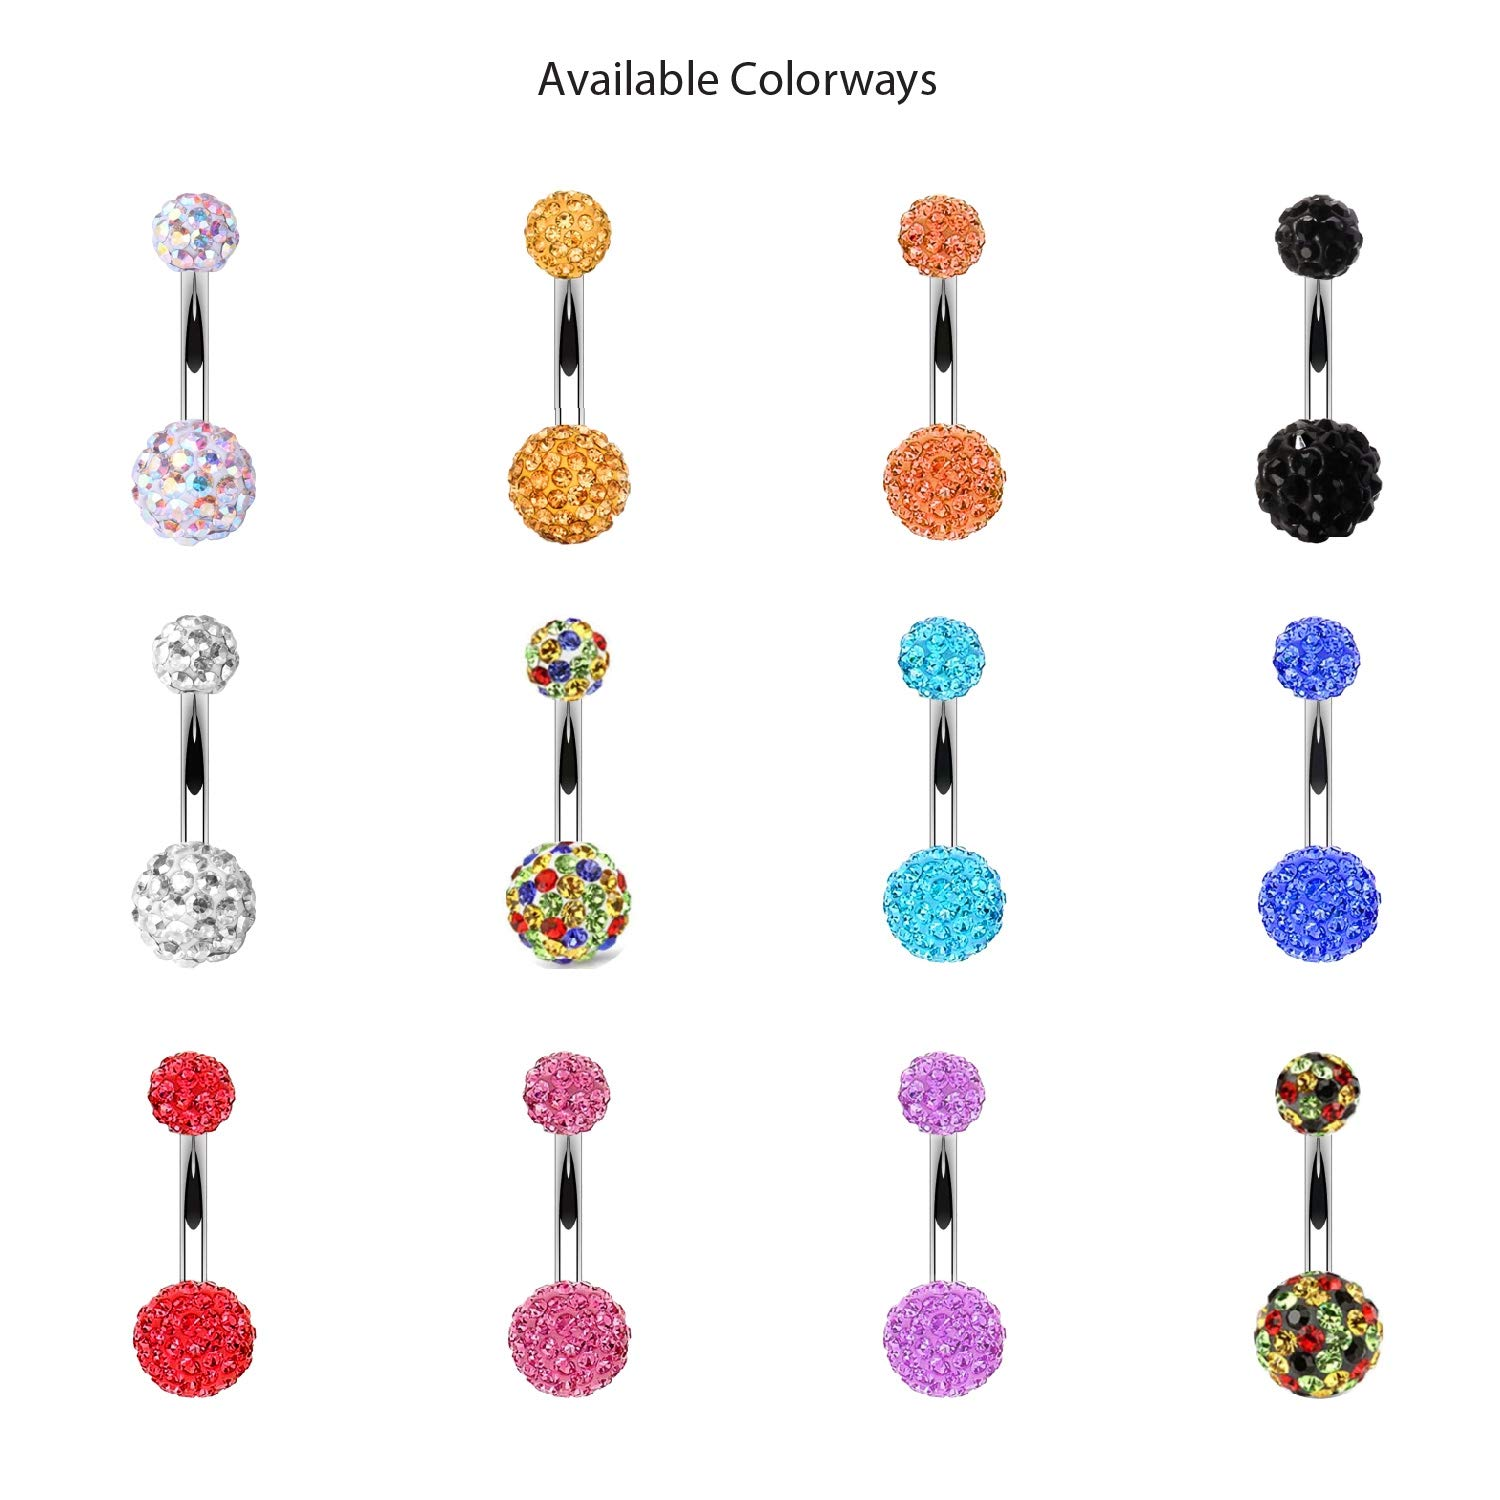 BodyJ4You Belly Button Ring Set Disco Ball CZ Crystals 14G Navel Banana Barbell Steel Body Jewelry